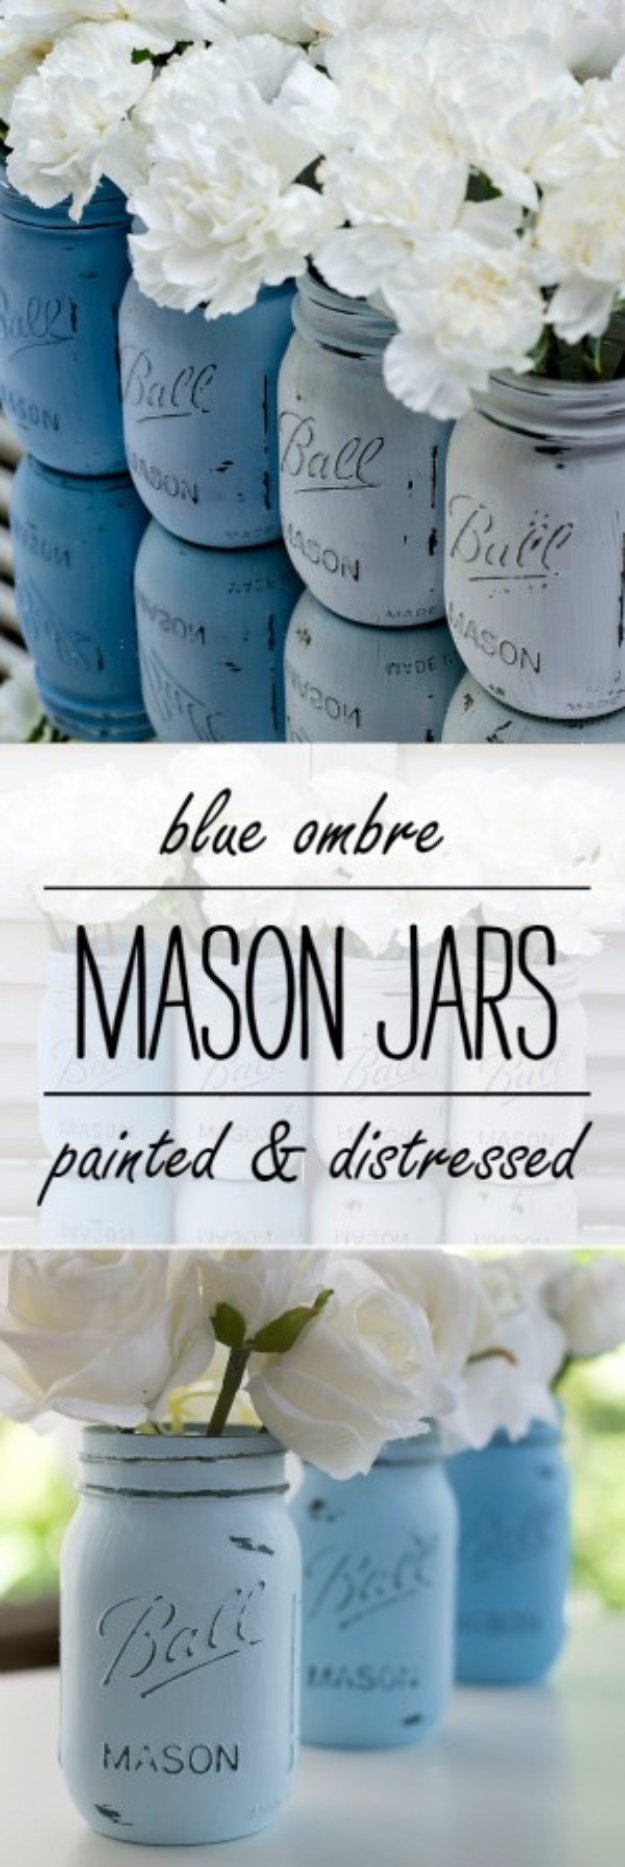 DIY Mason Jar Vases - Painted And Distressed Blue Ombre Mason Jars - Best Vase Projects and Ideas for Mason Jars - Painted, Wedding, Hanging Flowers, Centerpiece, Rustic Burlap, Ribbon and Twine http://diyjoy.com/diy-mason-jar-vases